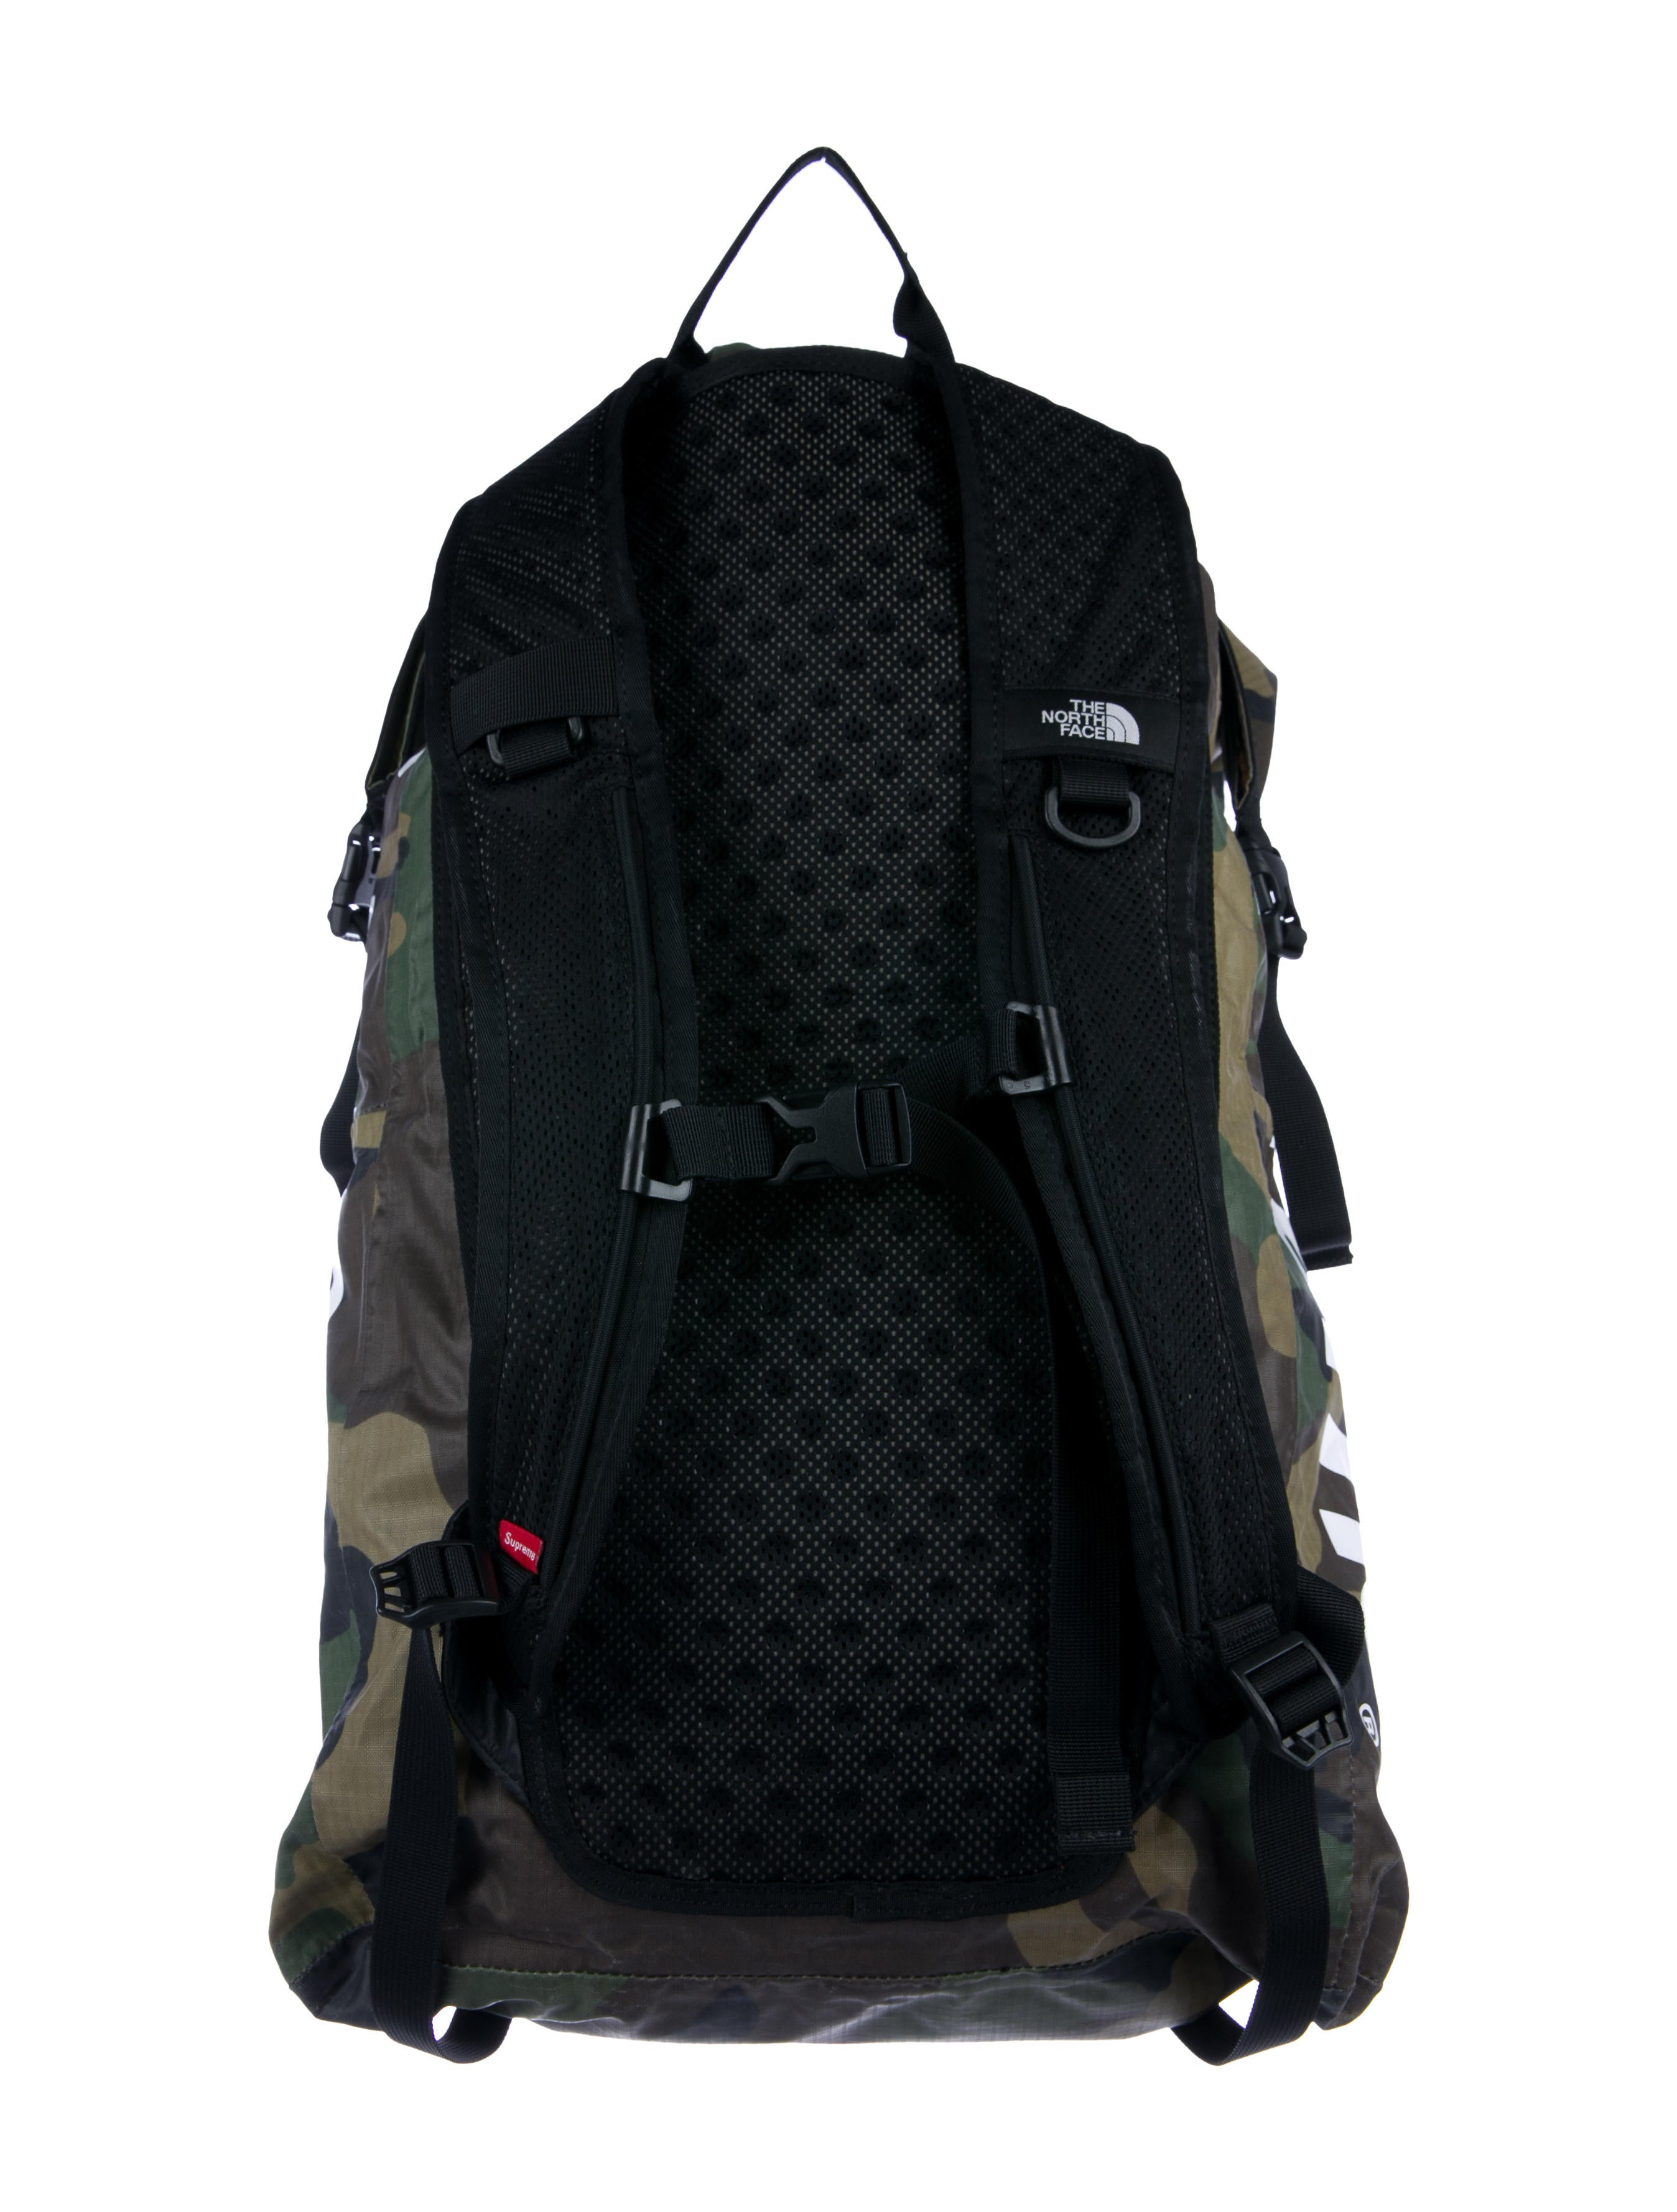 1a26d620 Supreme X The North Face Waterproof Backpack Woodland Camo- Fenix ...